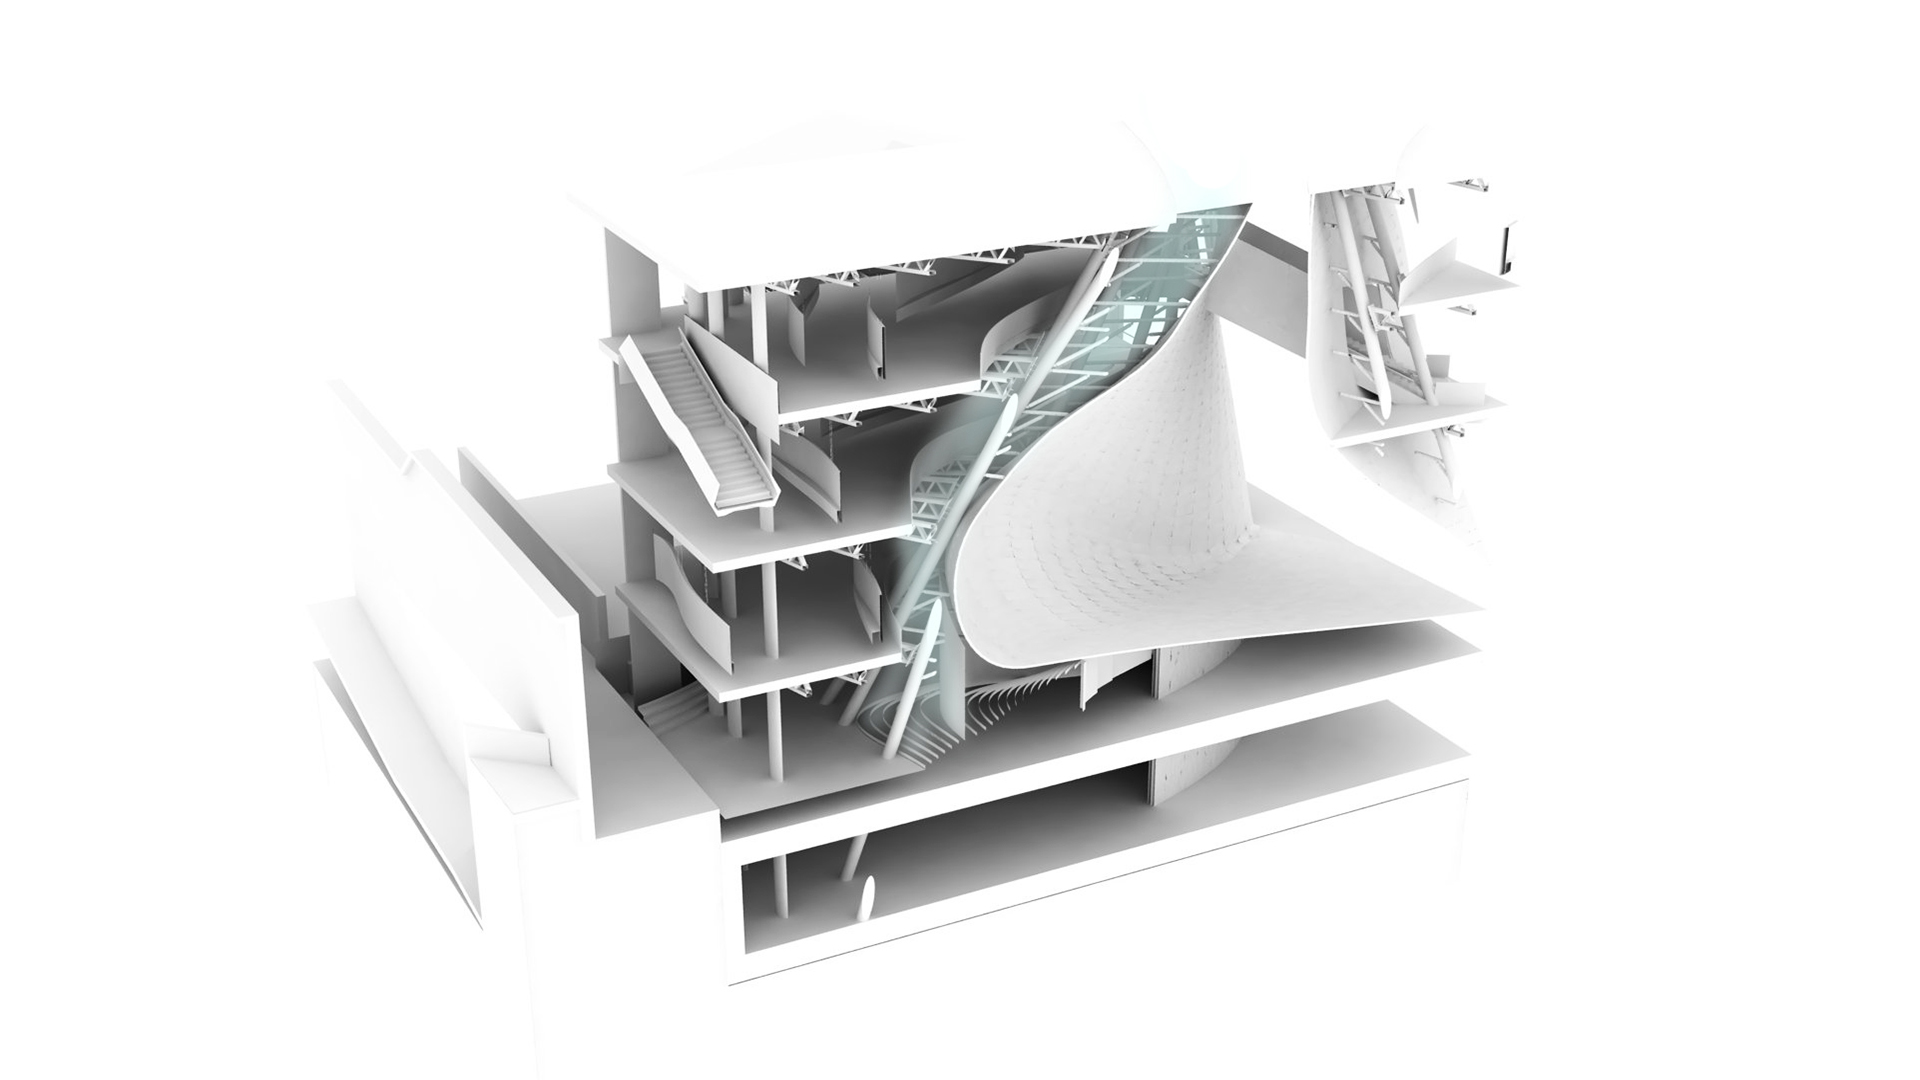 Urban Void Meis Competition Alfonso Architetti Rendering Plains